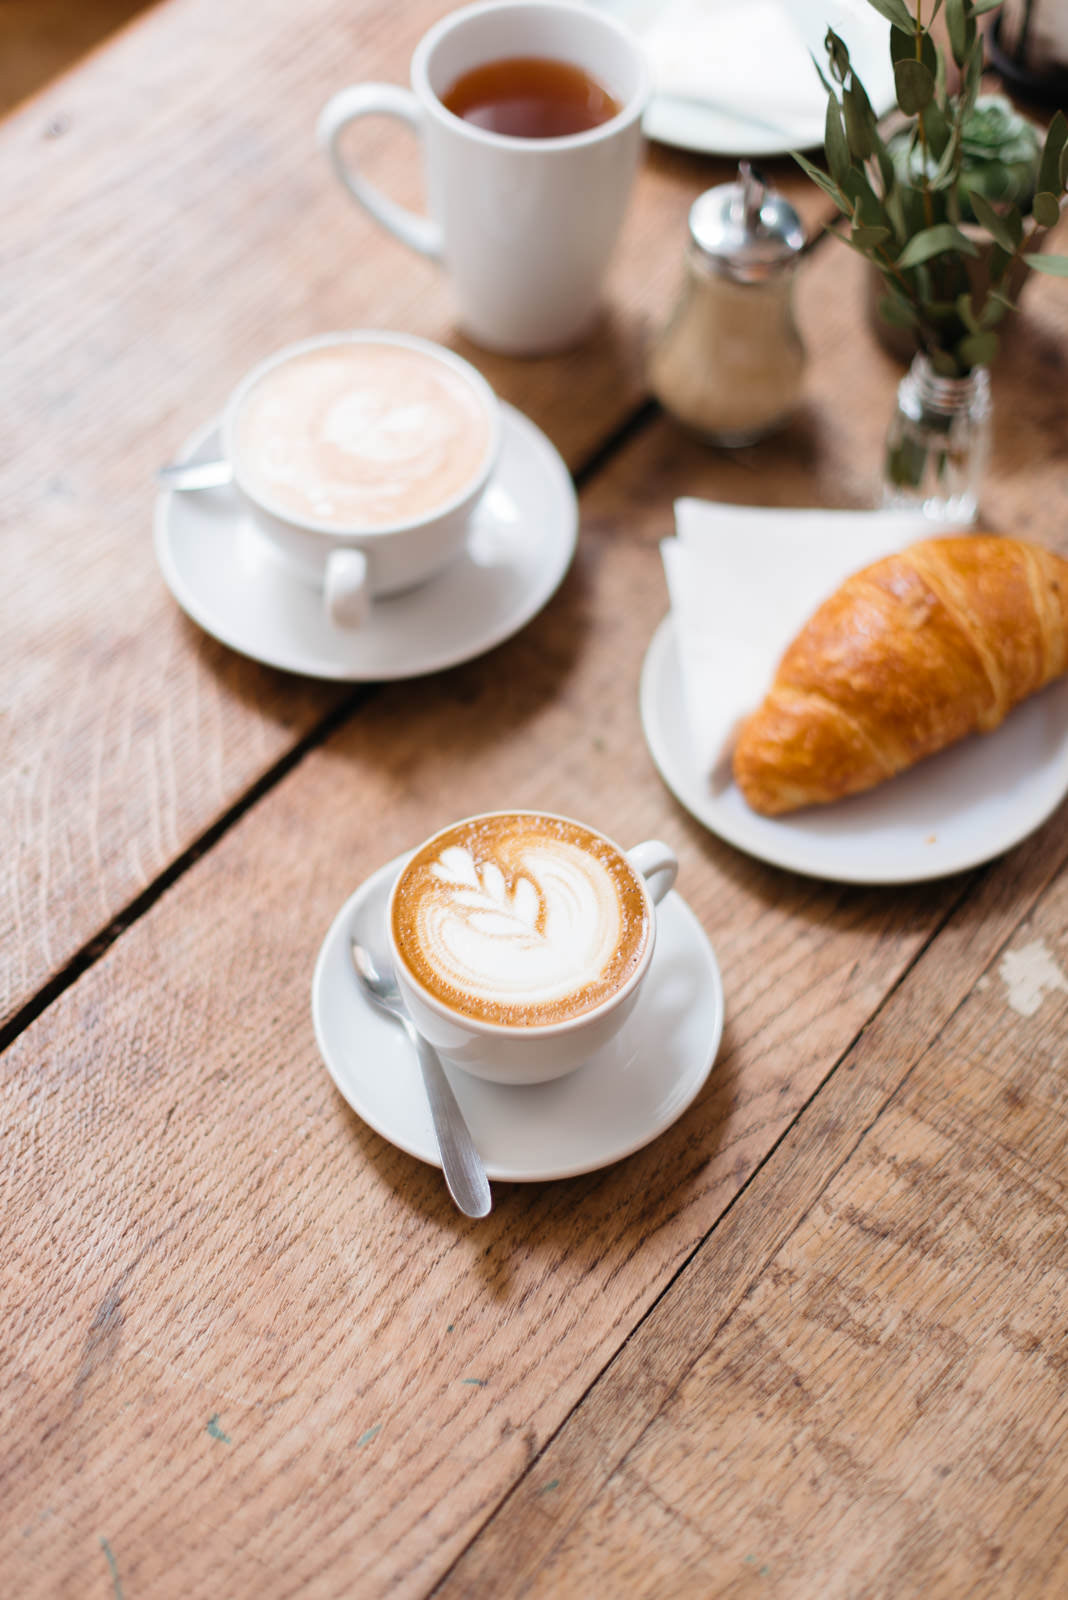 Blog-mode-And-The-City-Lifestyle-Cinq-Petites-Choses-195-passager-cafe